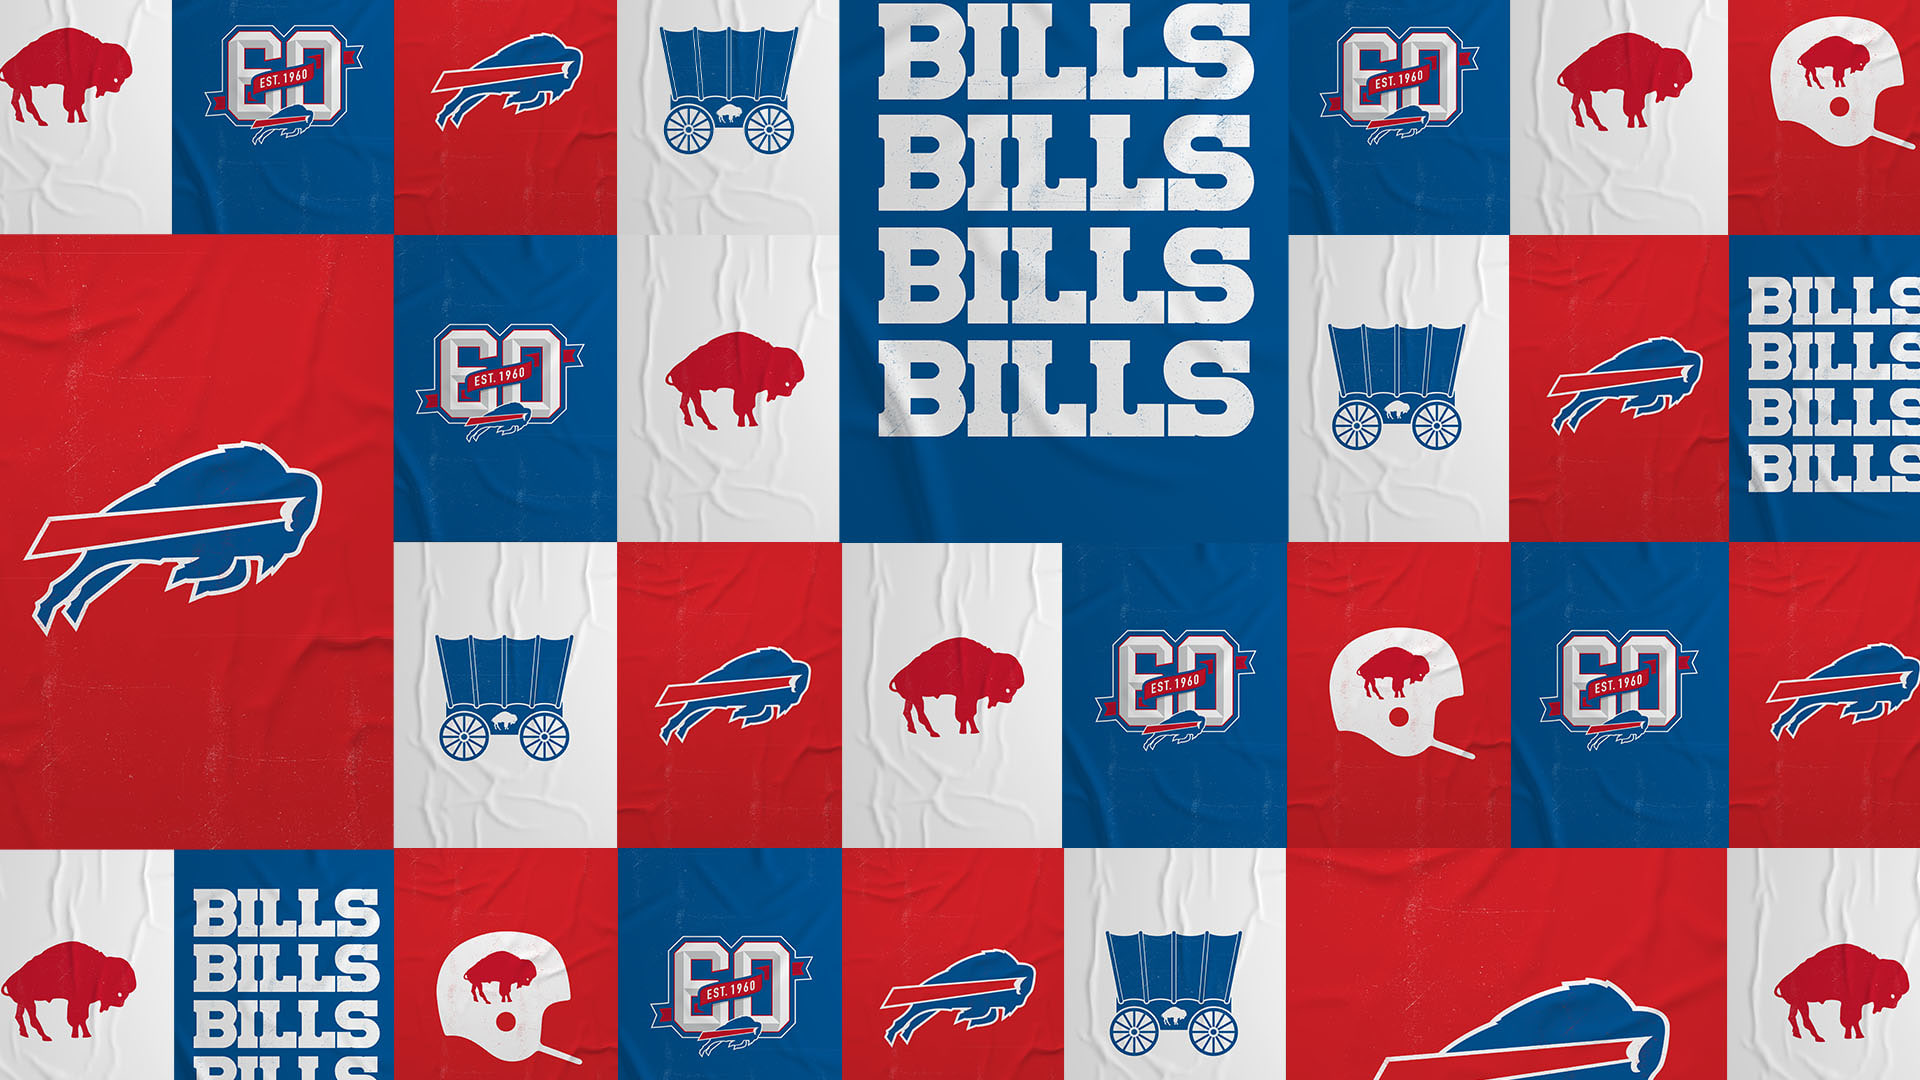 Buffalo Bills Wallpaper Hd 1920x1080 Wallpaper Teahub Io